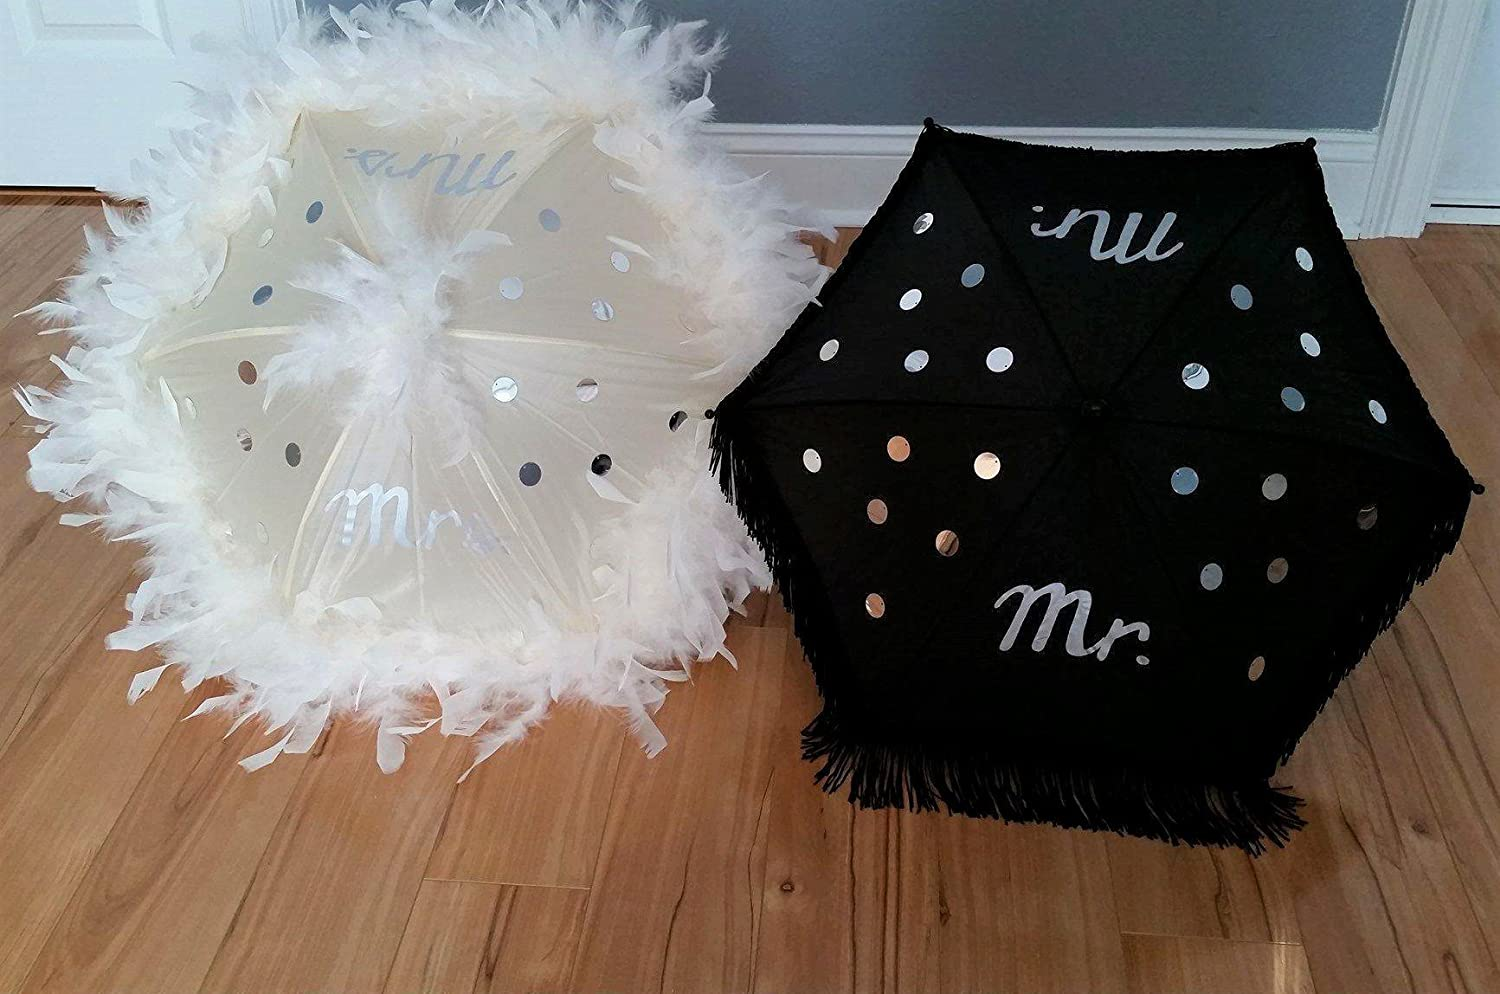 Wedding Second Line Parasol Umbrellas Handmade In New Orleans, Black and Cream, Silver Mr. Mrs. andSequins with Feathers and Fringe